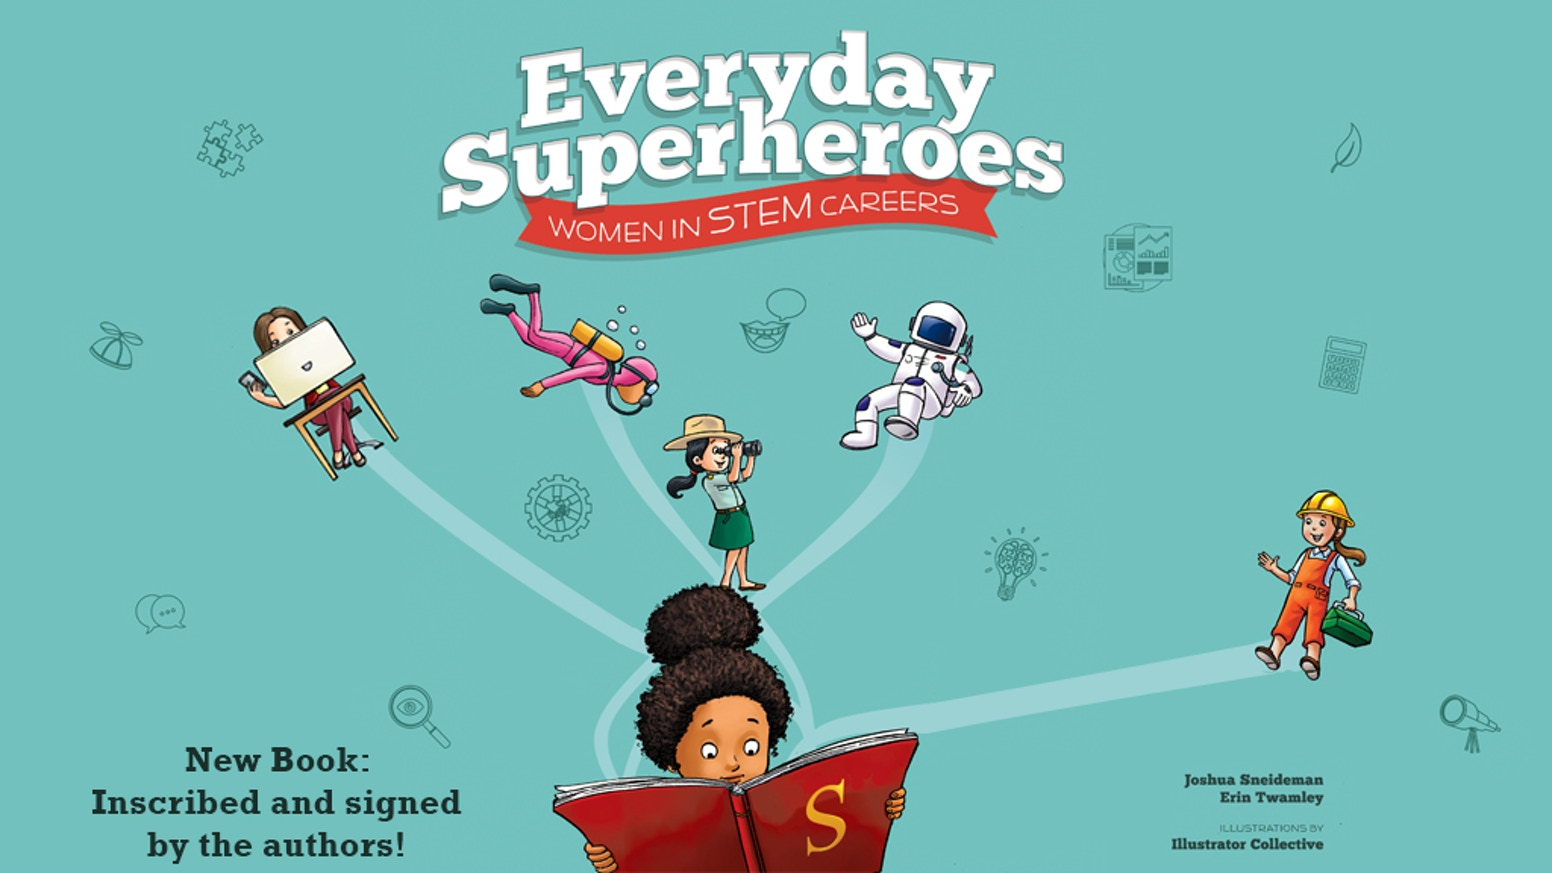 A children's book tackling stereotypes in STEM, by sharing the colorful stories of 26 diverse women from an astronomer to zoologist.